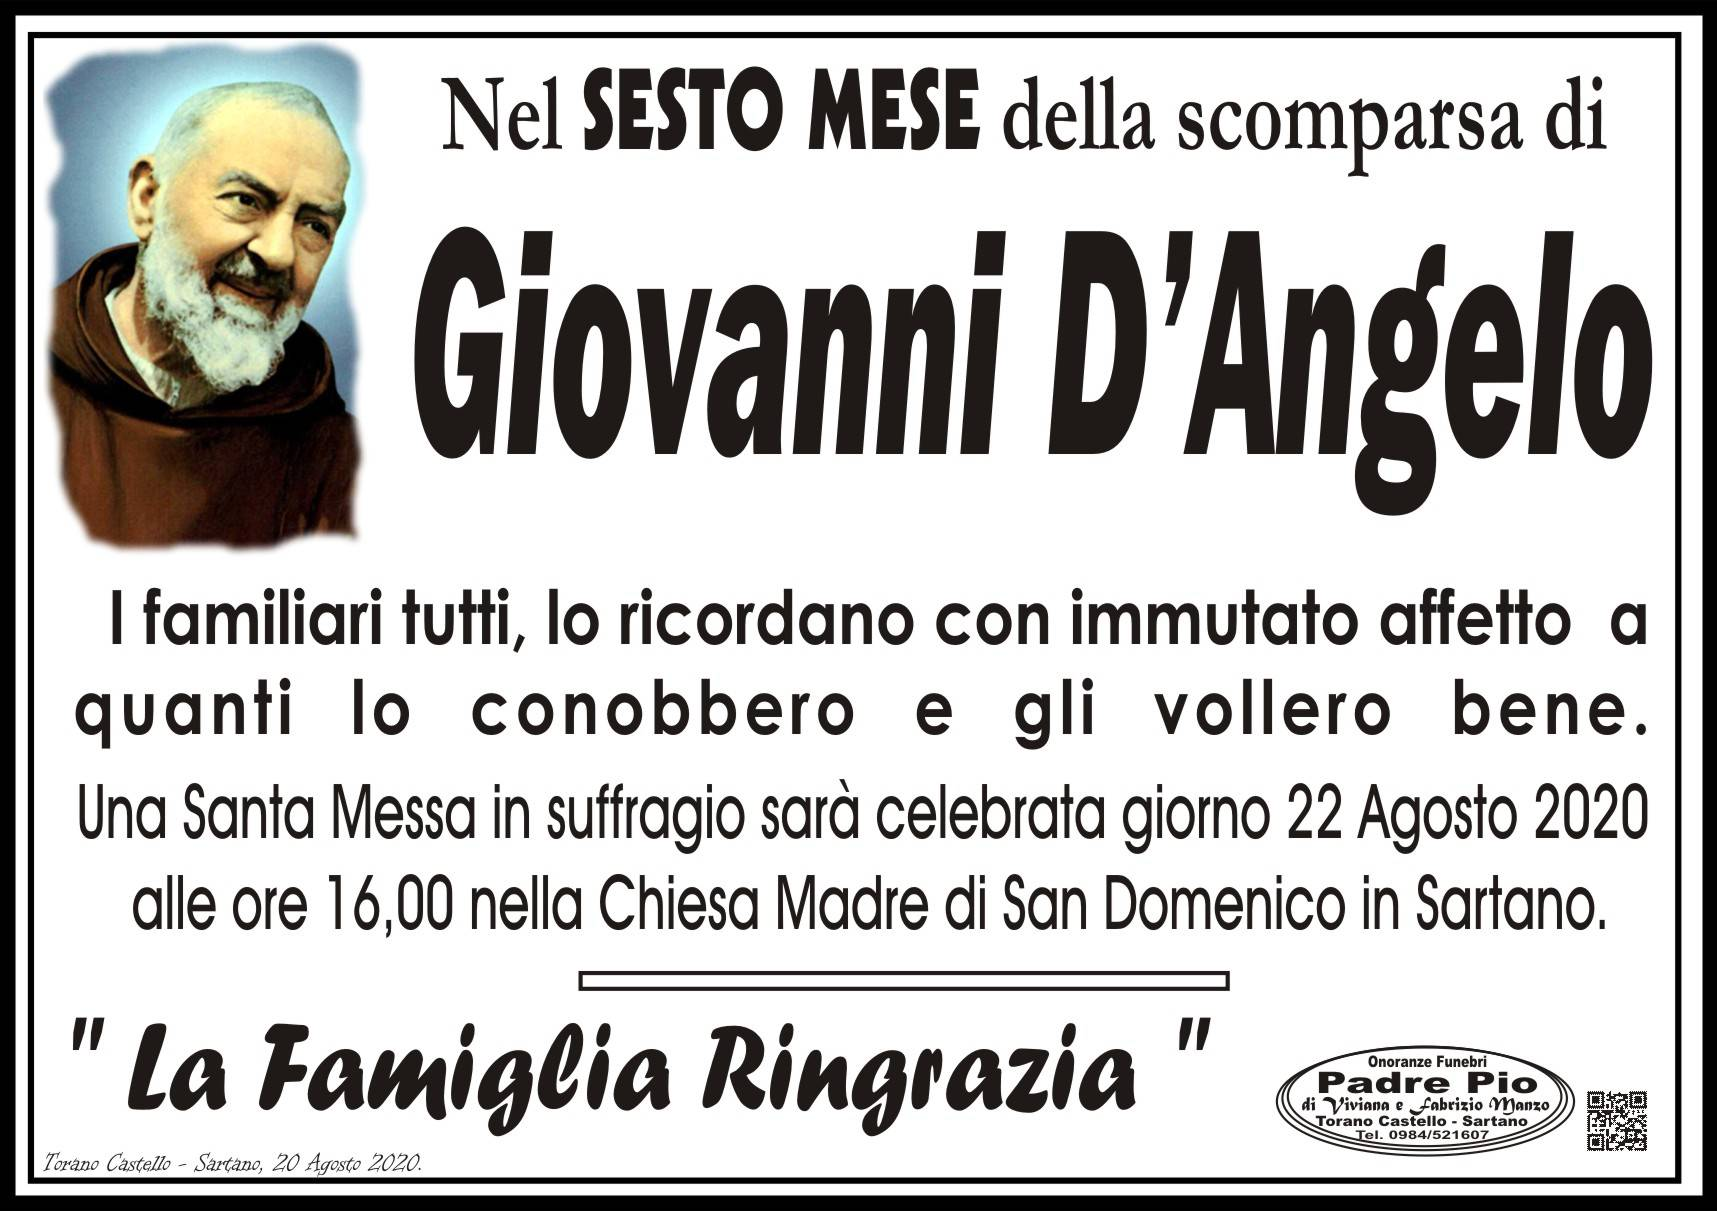 Giovanni D'Angelo